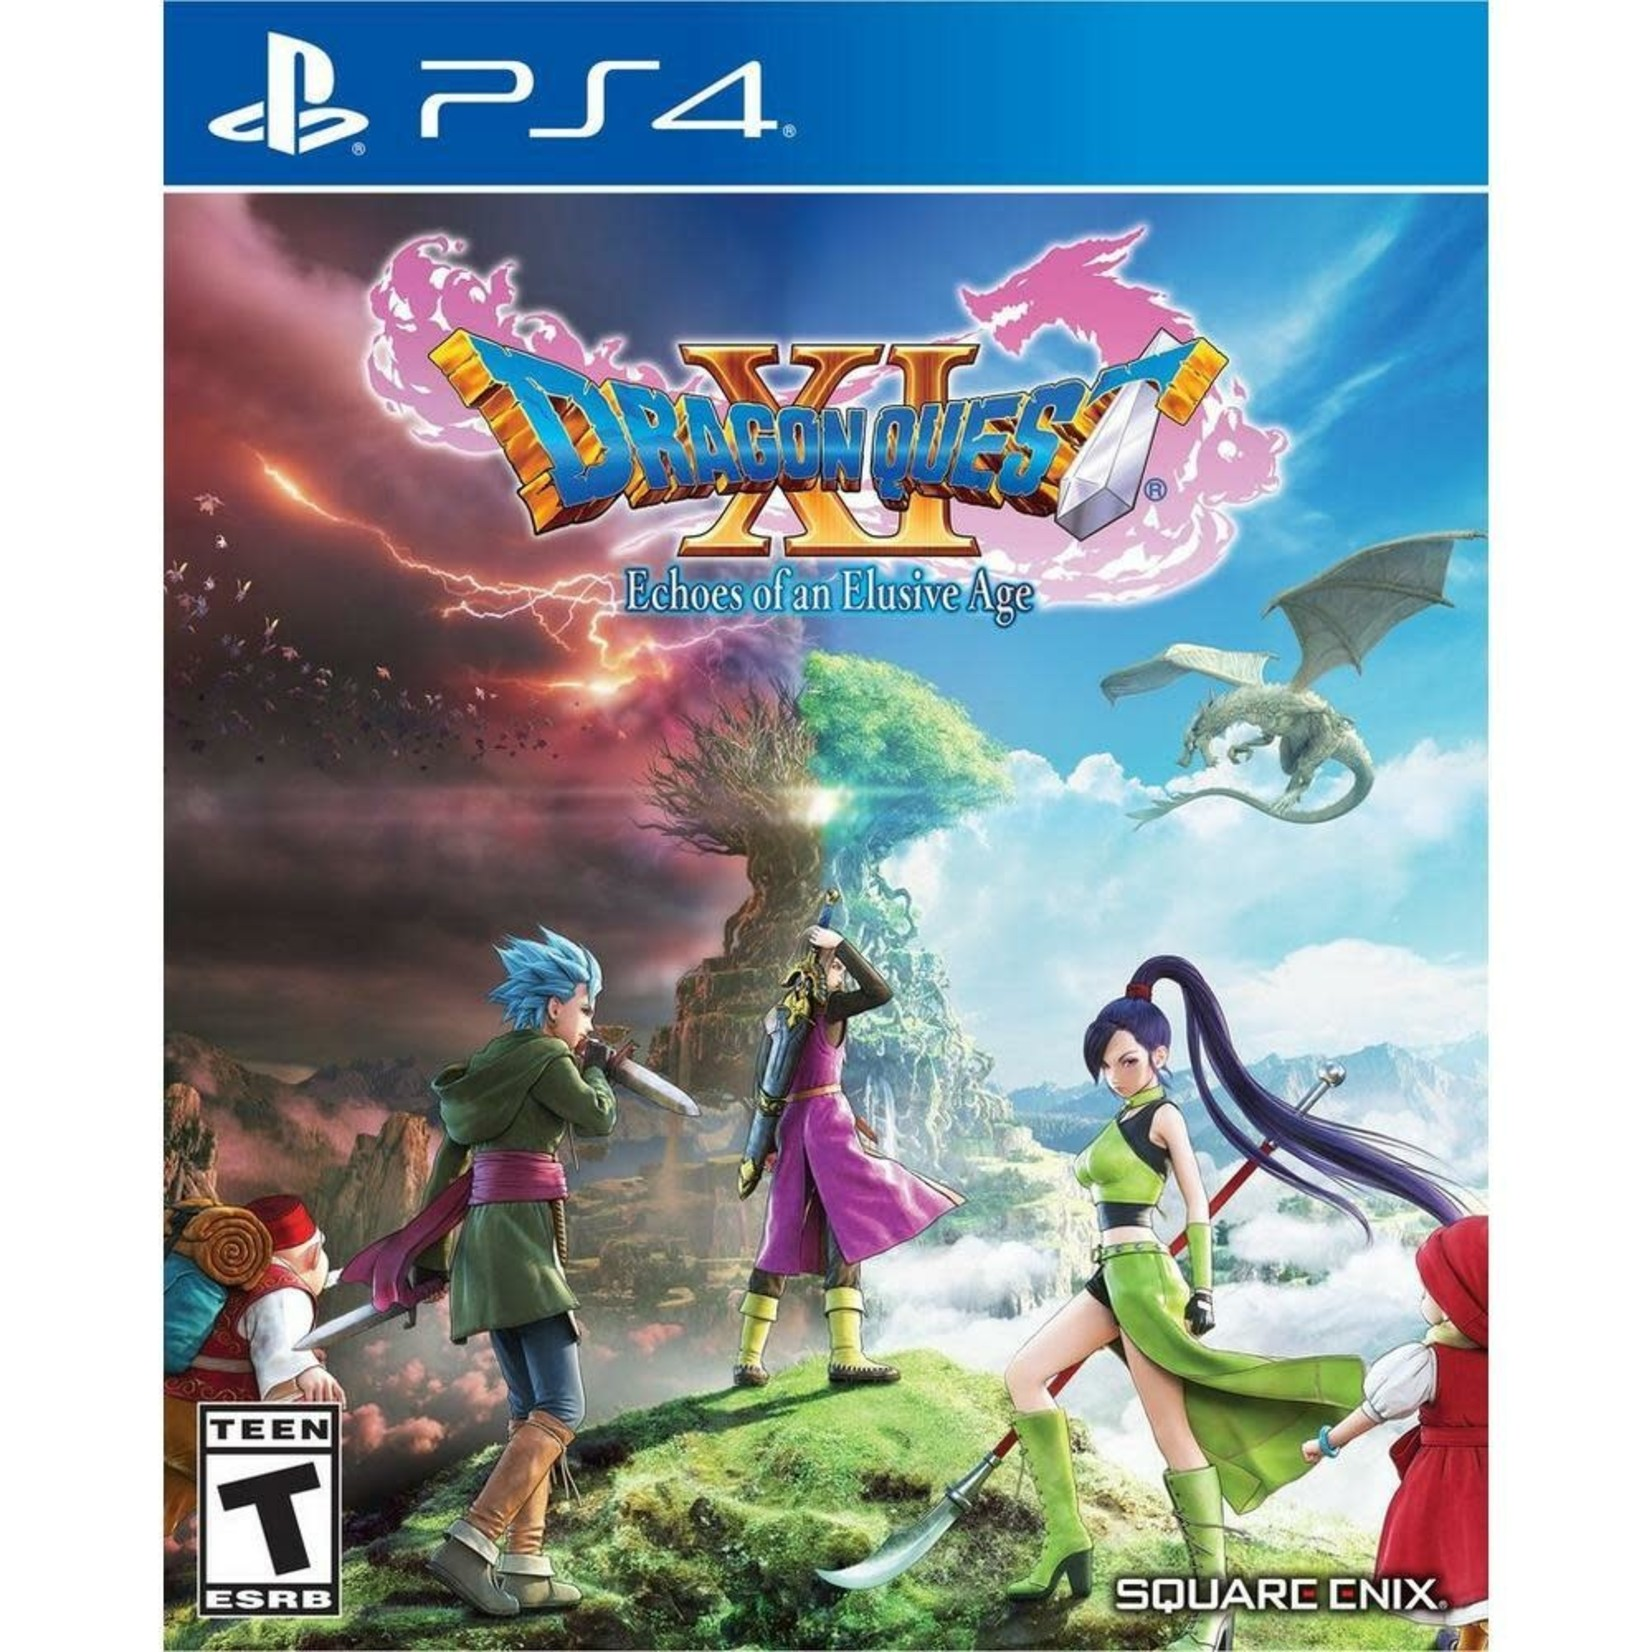 PS4U-DRAGON QUEST XI: ECHOES OF AN ELUSIVE AGE